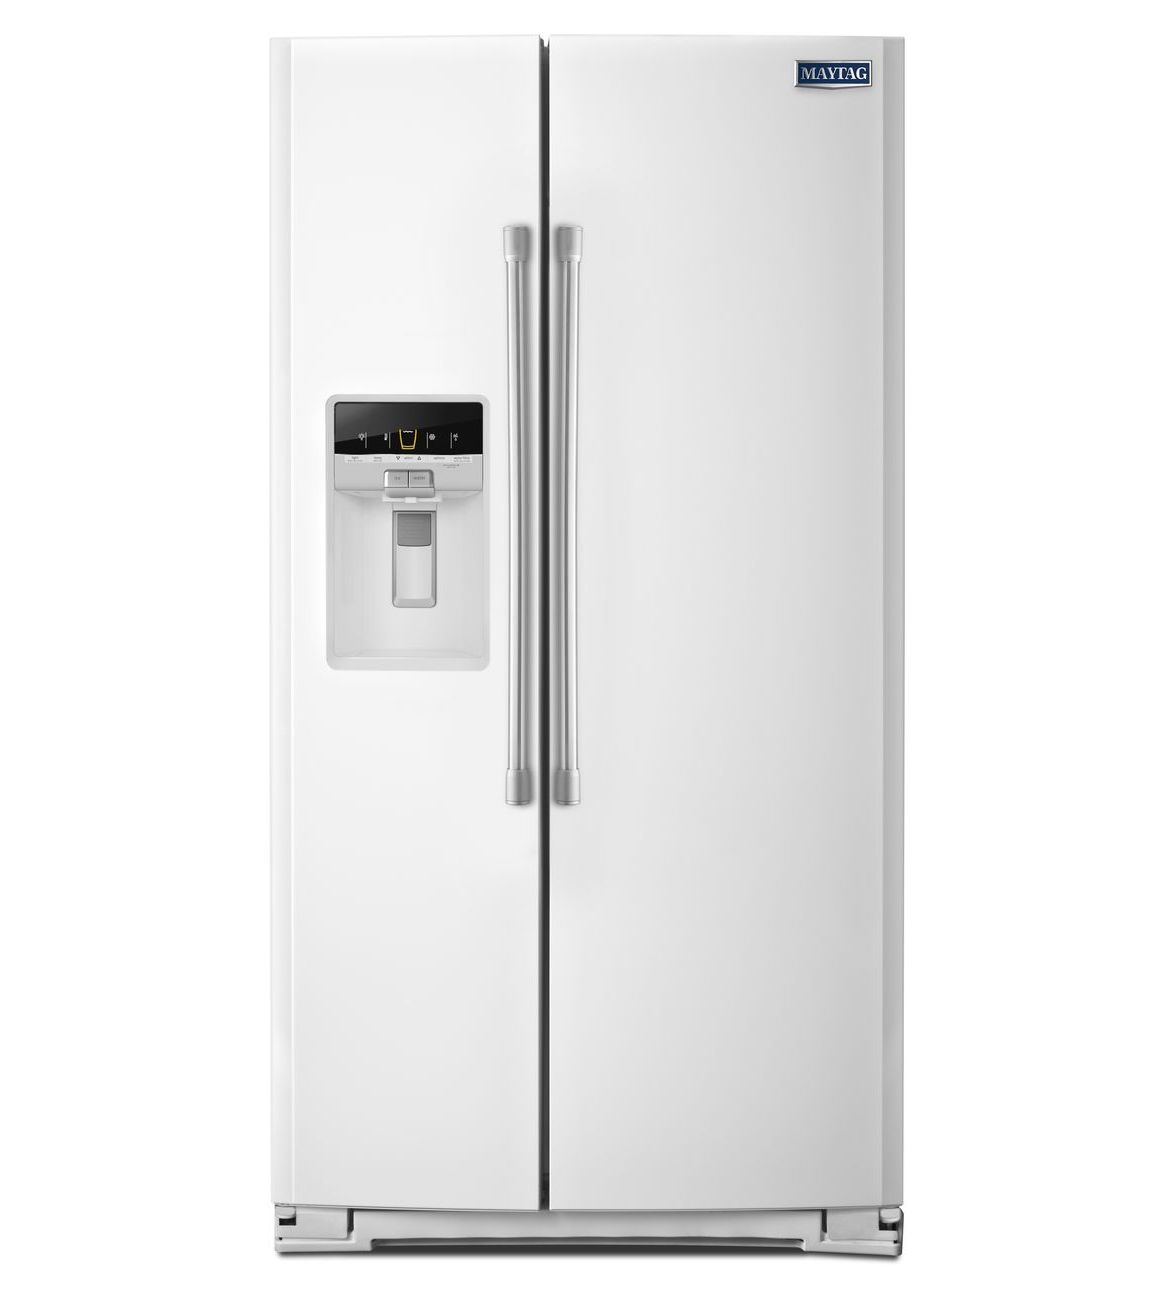 Side By Side Fridge The 5 Best Maytag Refrigerators Product Reviews And Ratings